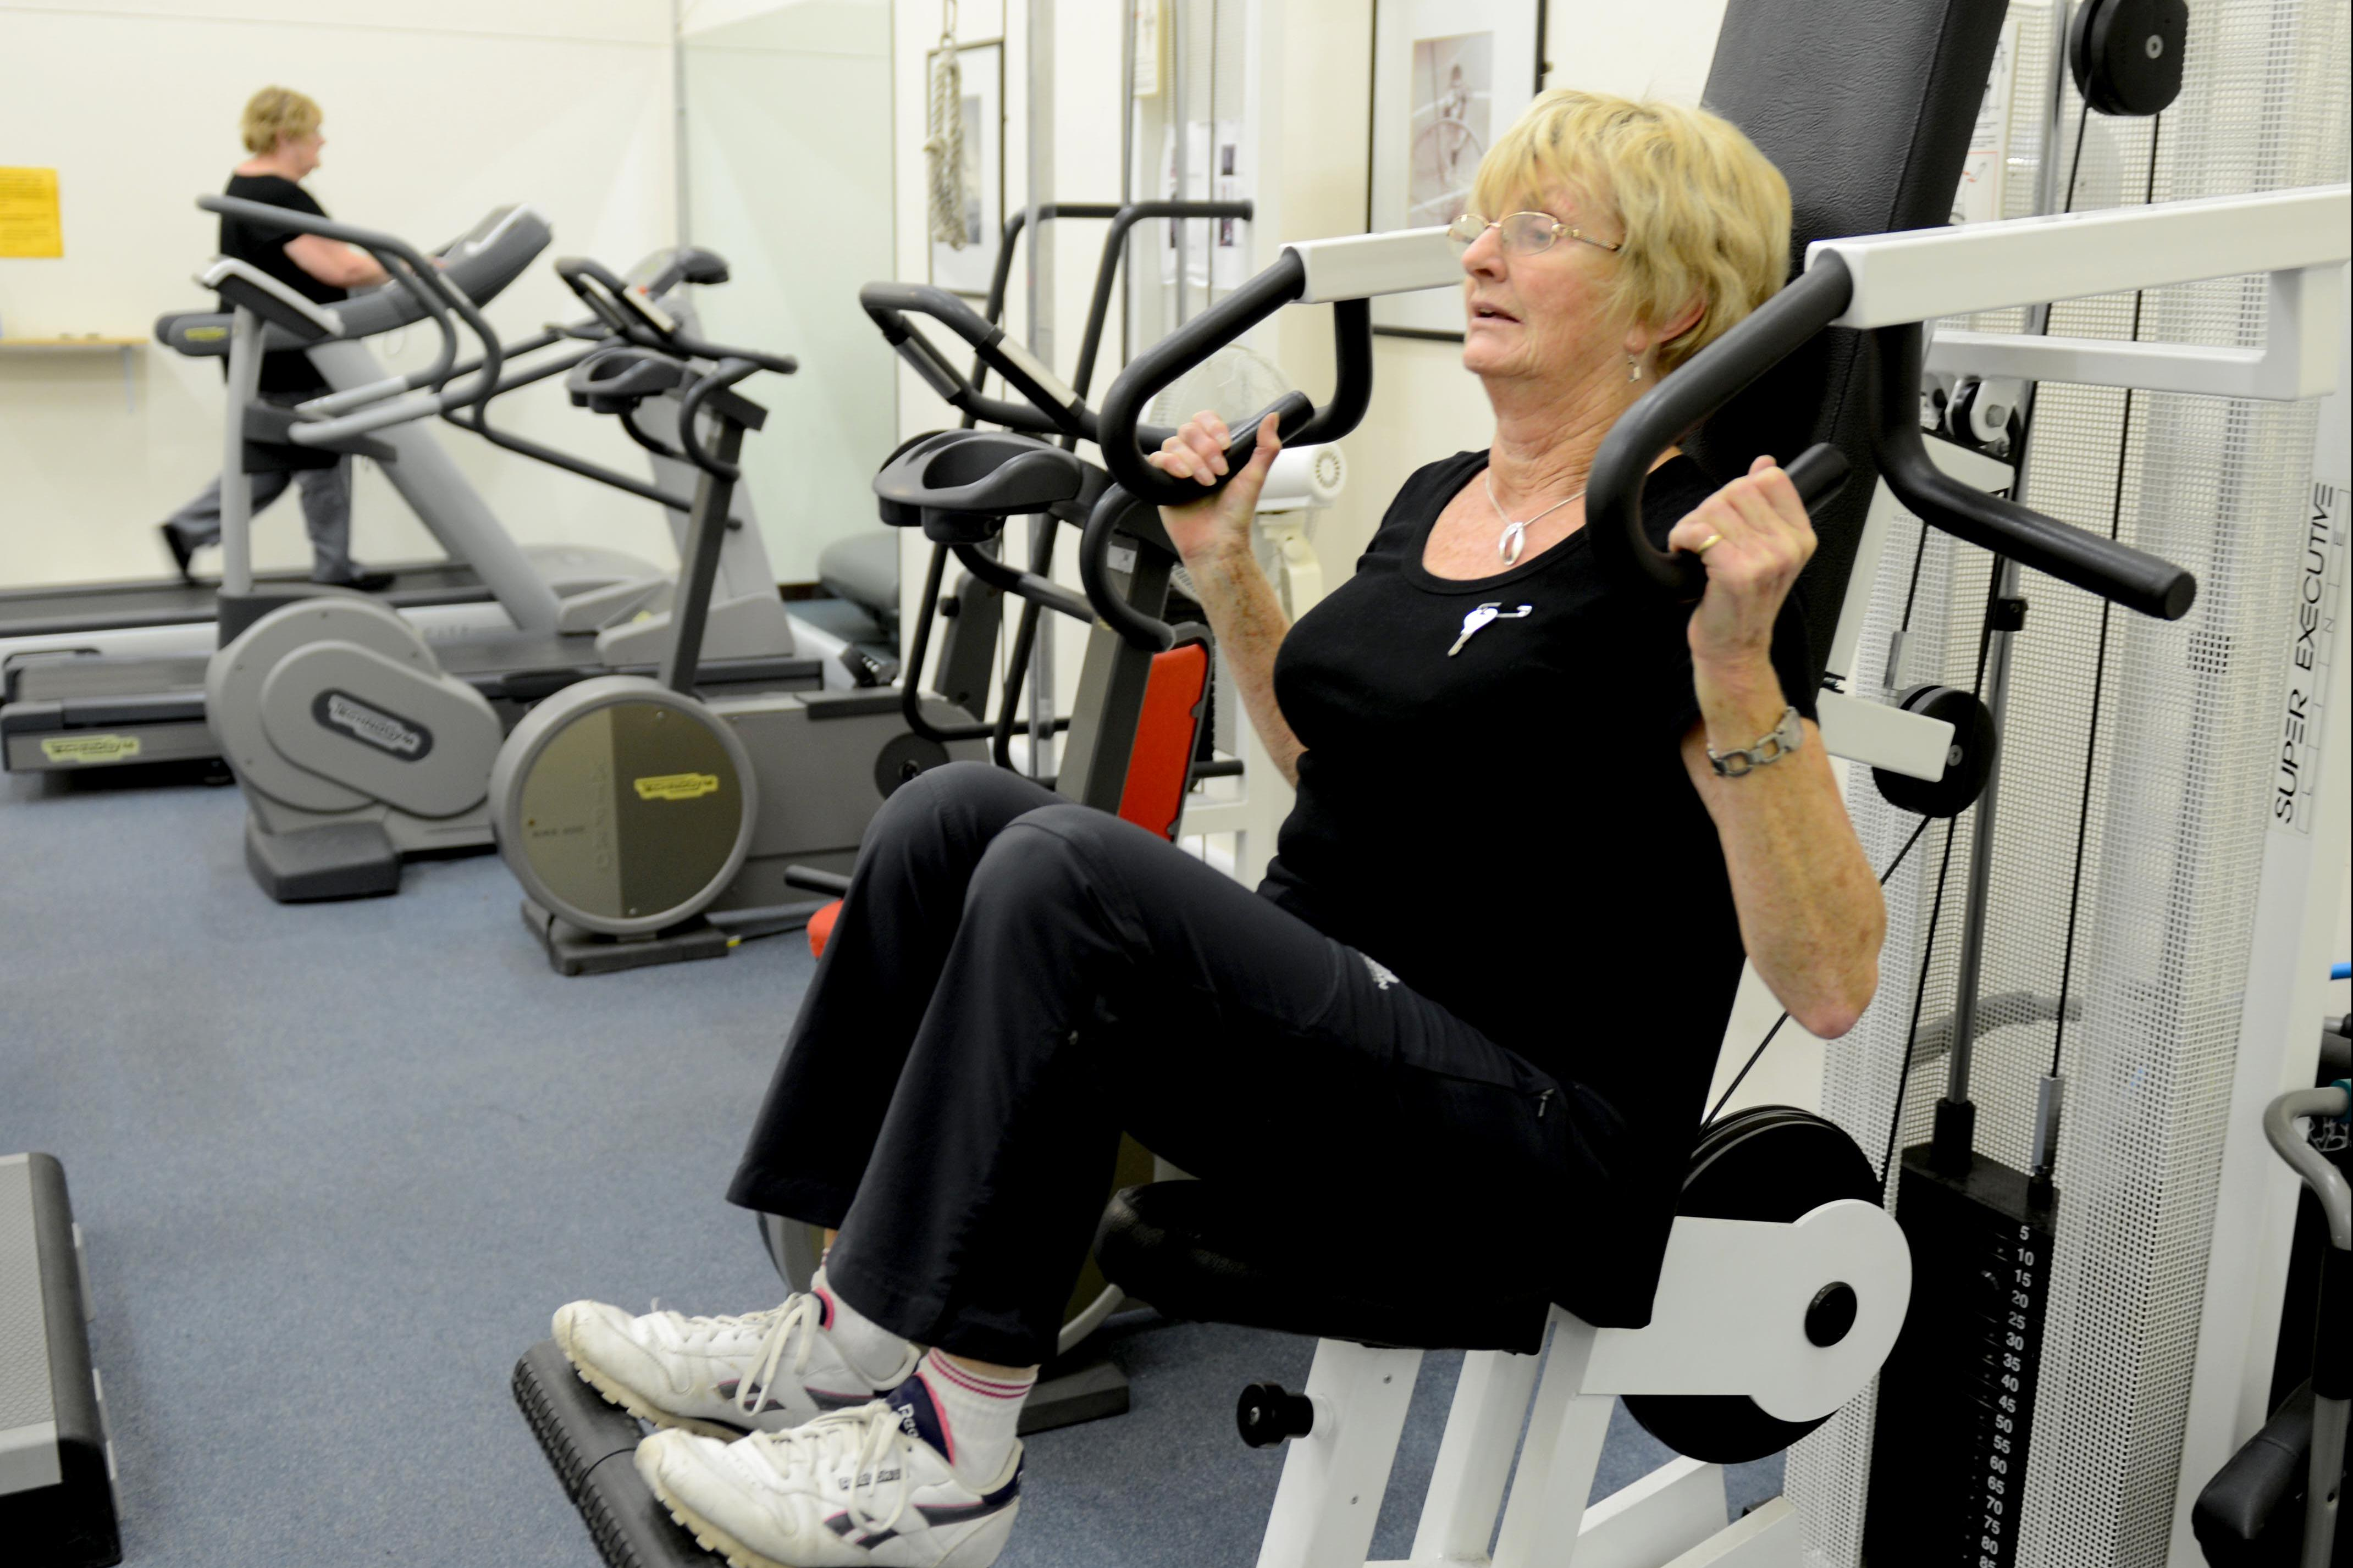 Woman using exercise machine